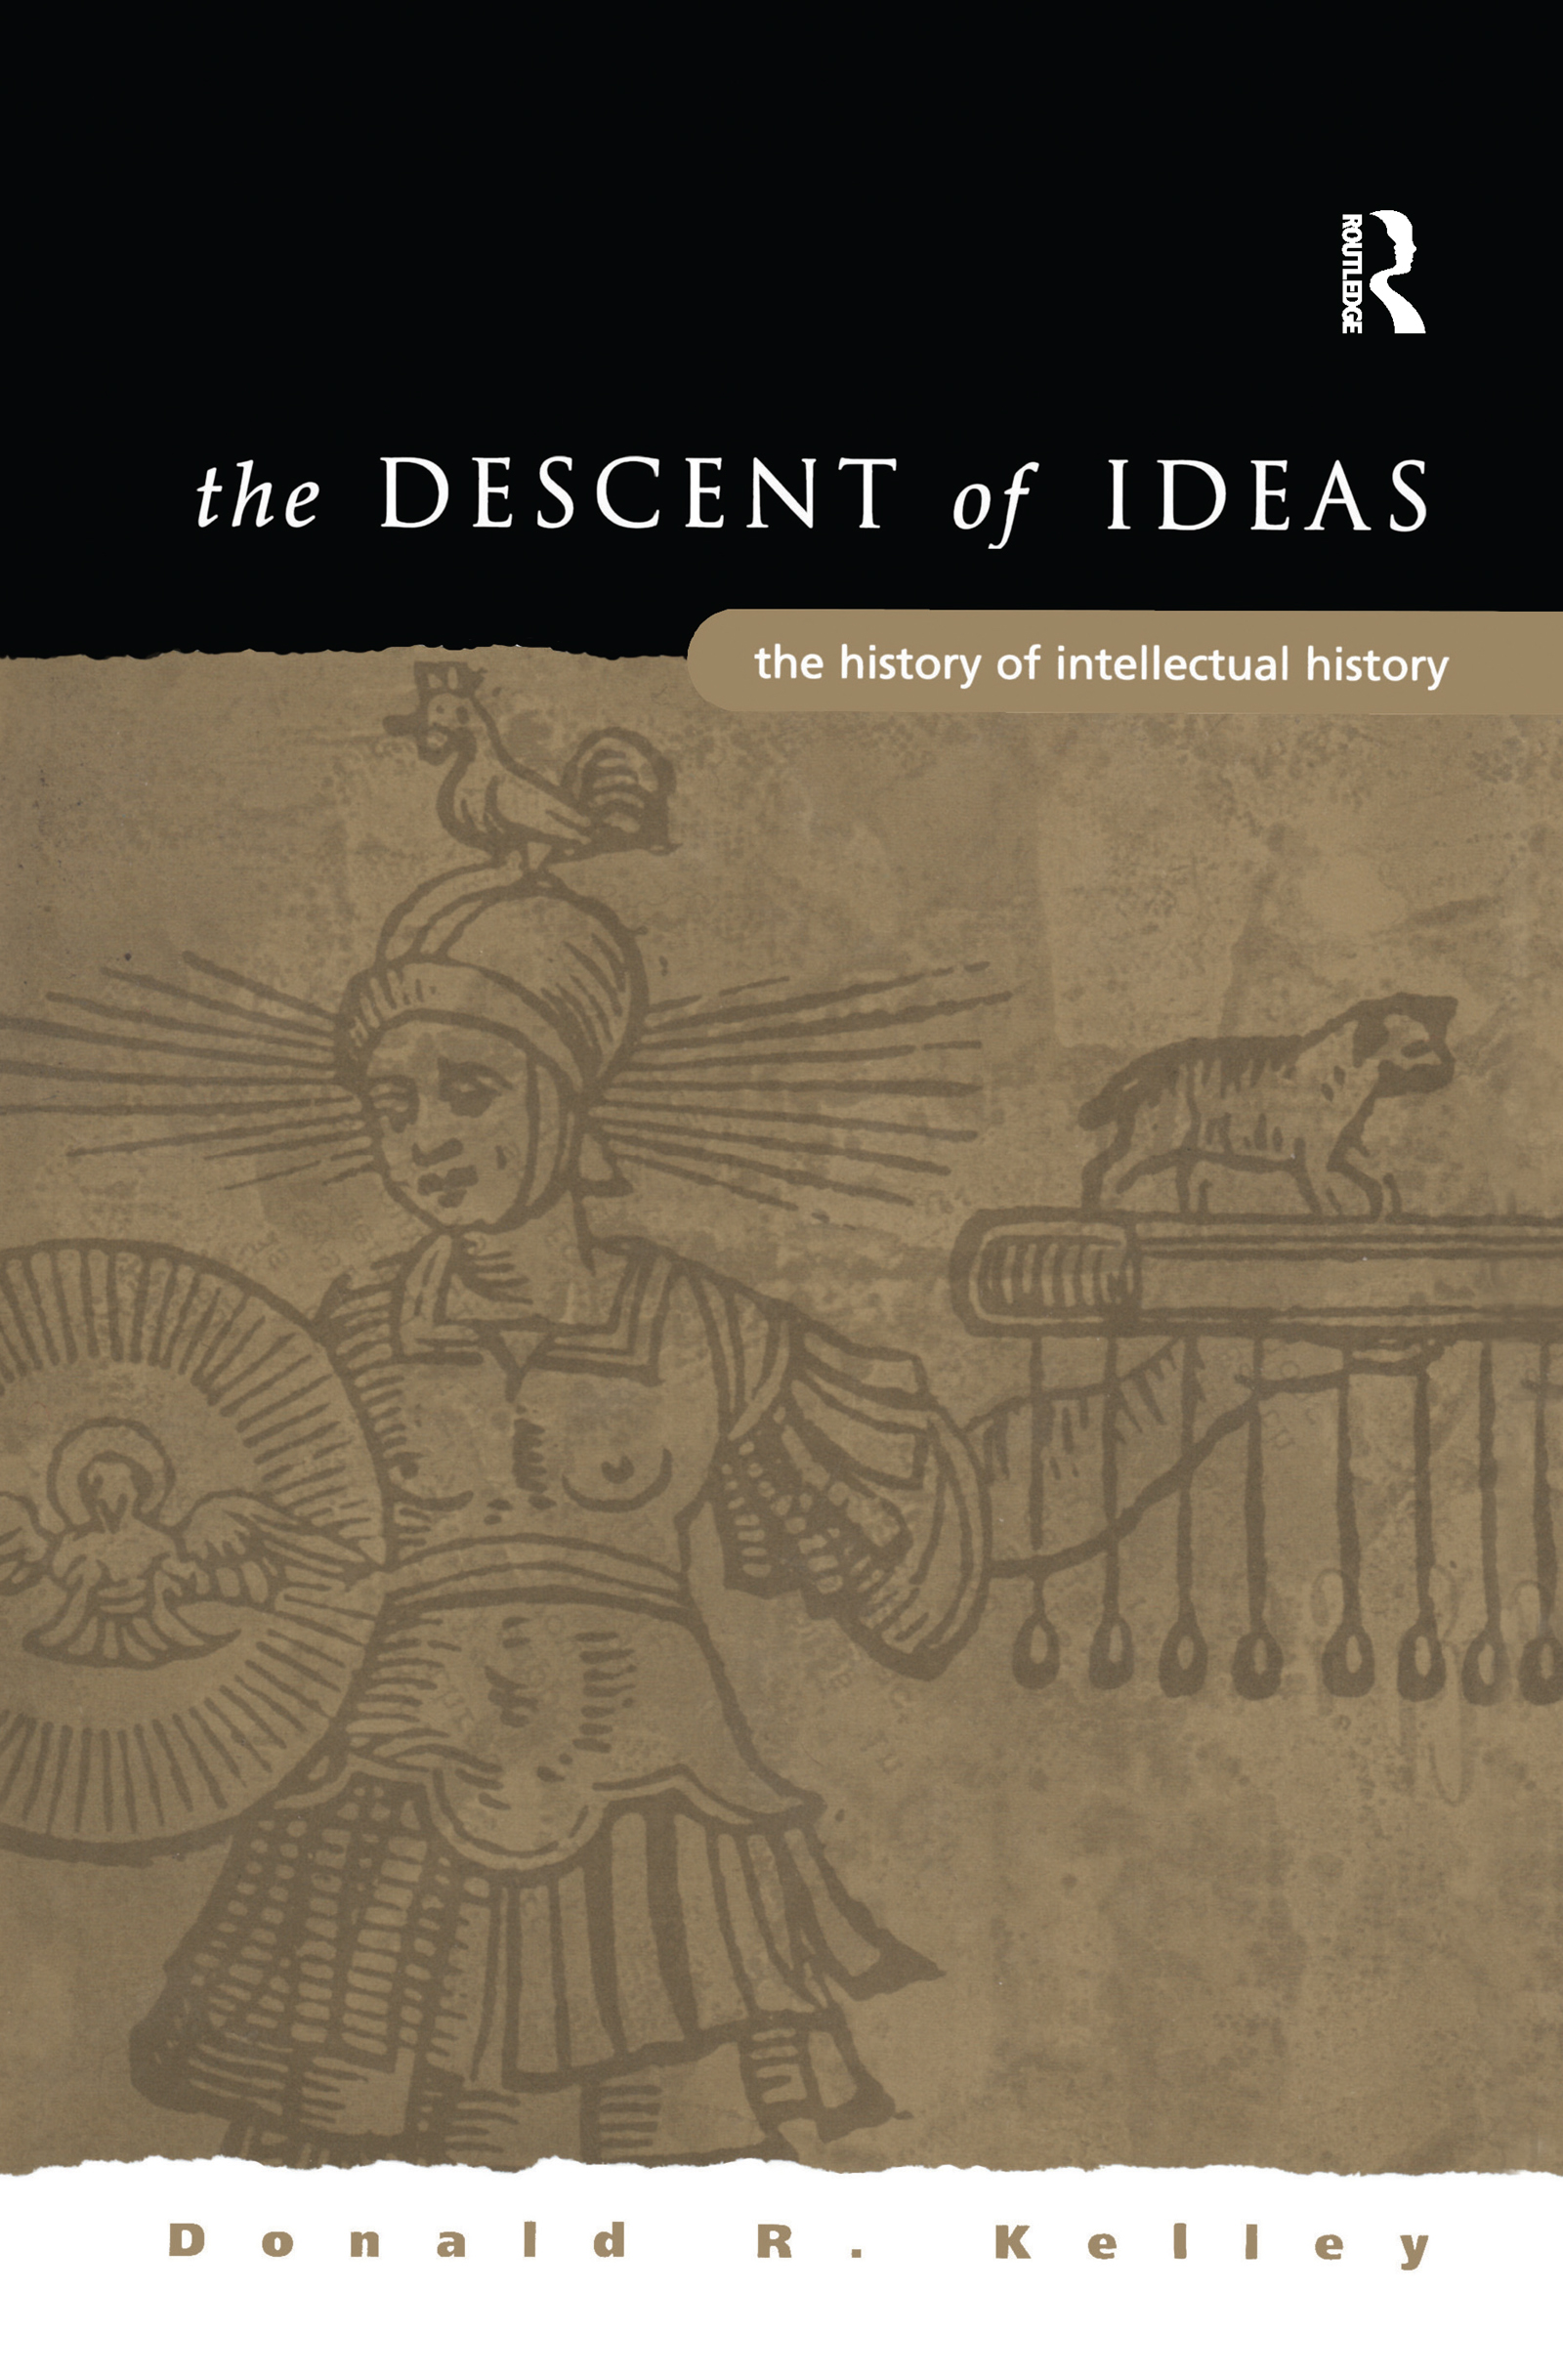 The Descent of Ideas